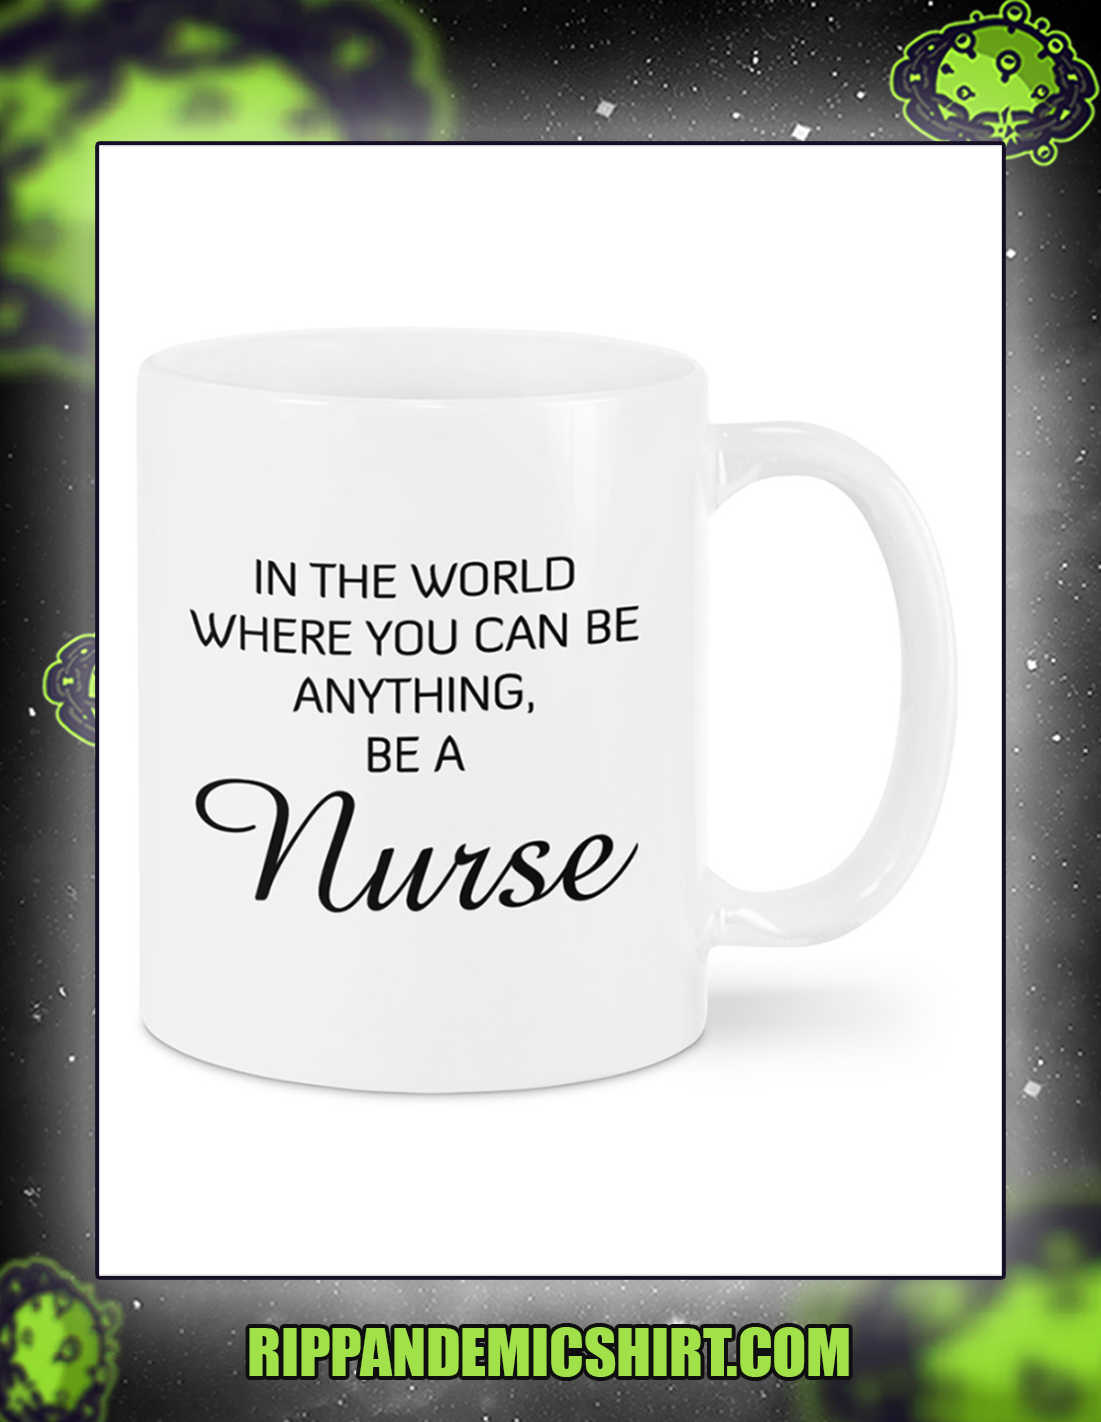 In a world where you can be anything be a nurse mug 2